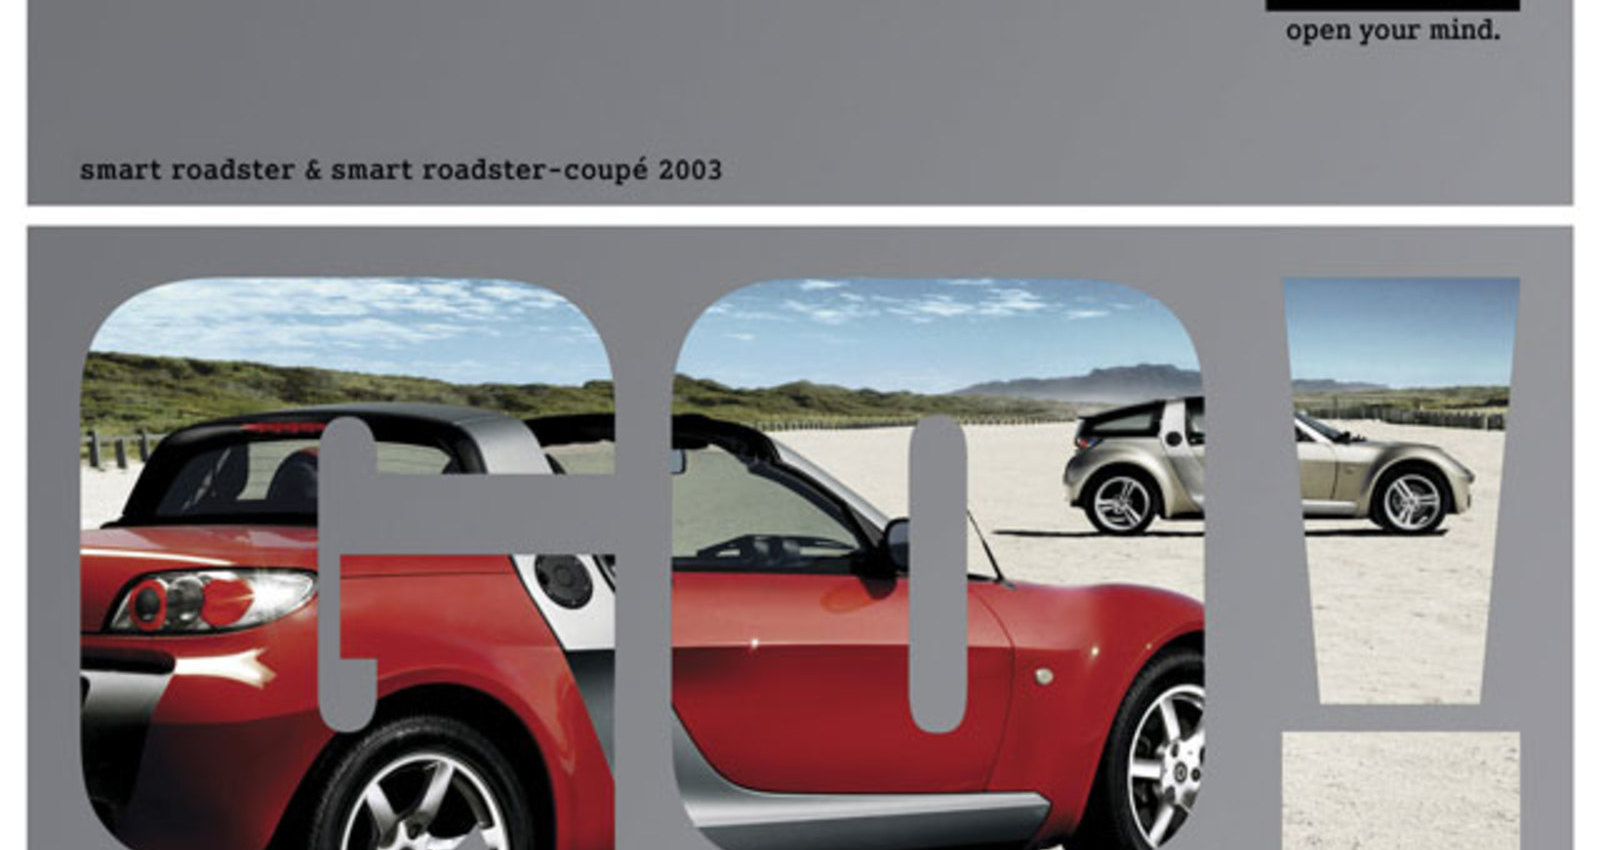 smart roadster & smart roadster-coupé main catalogue 2003